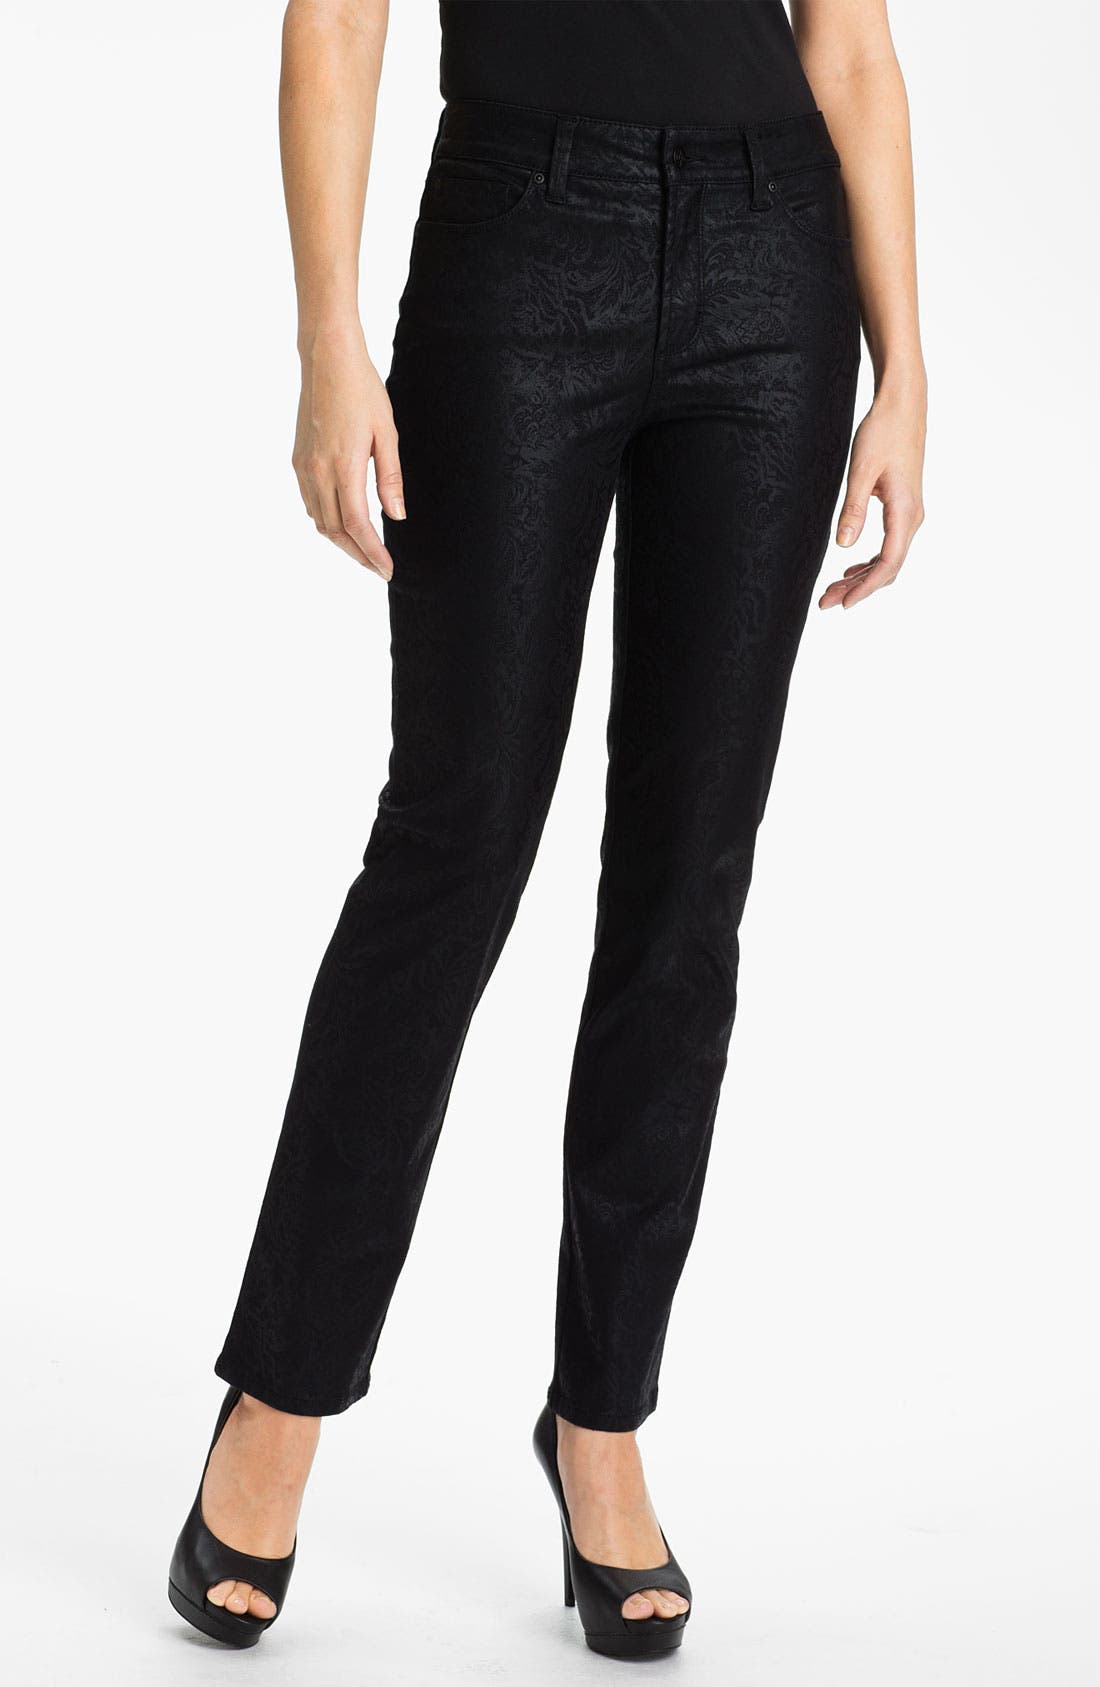 Alternate Image 1 Selected - NYDJ 'Sheri - Metallic Gilded Lily' Twill Skinny Jeans (Petite)